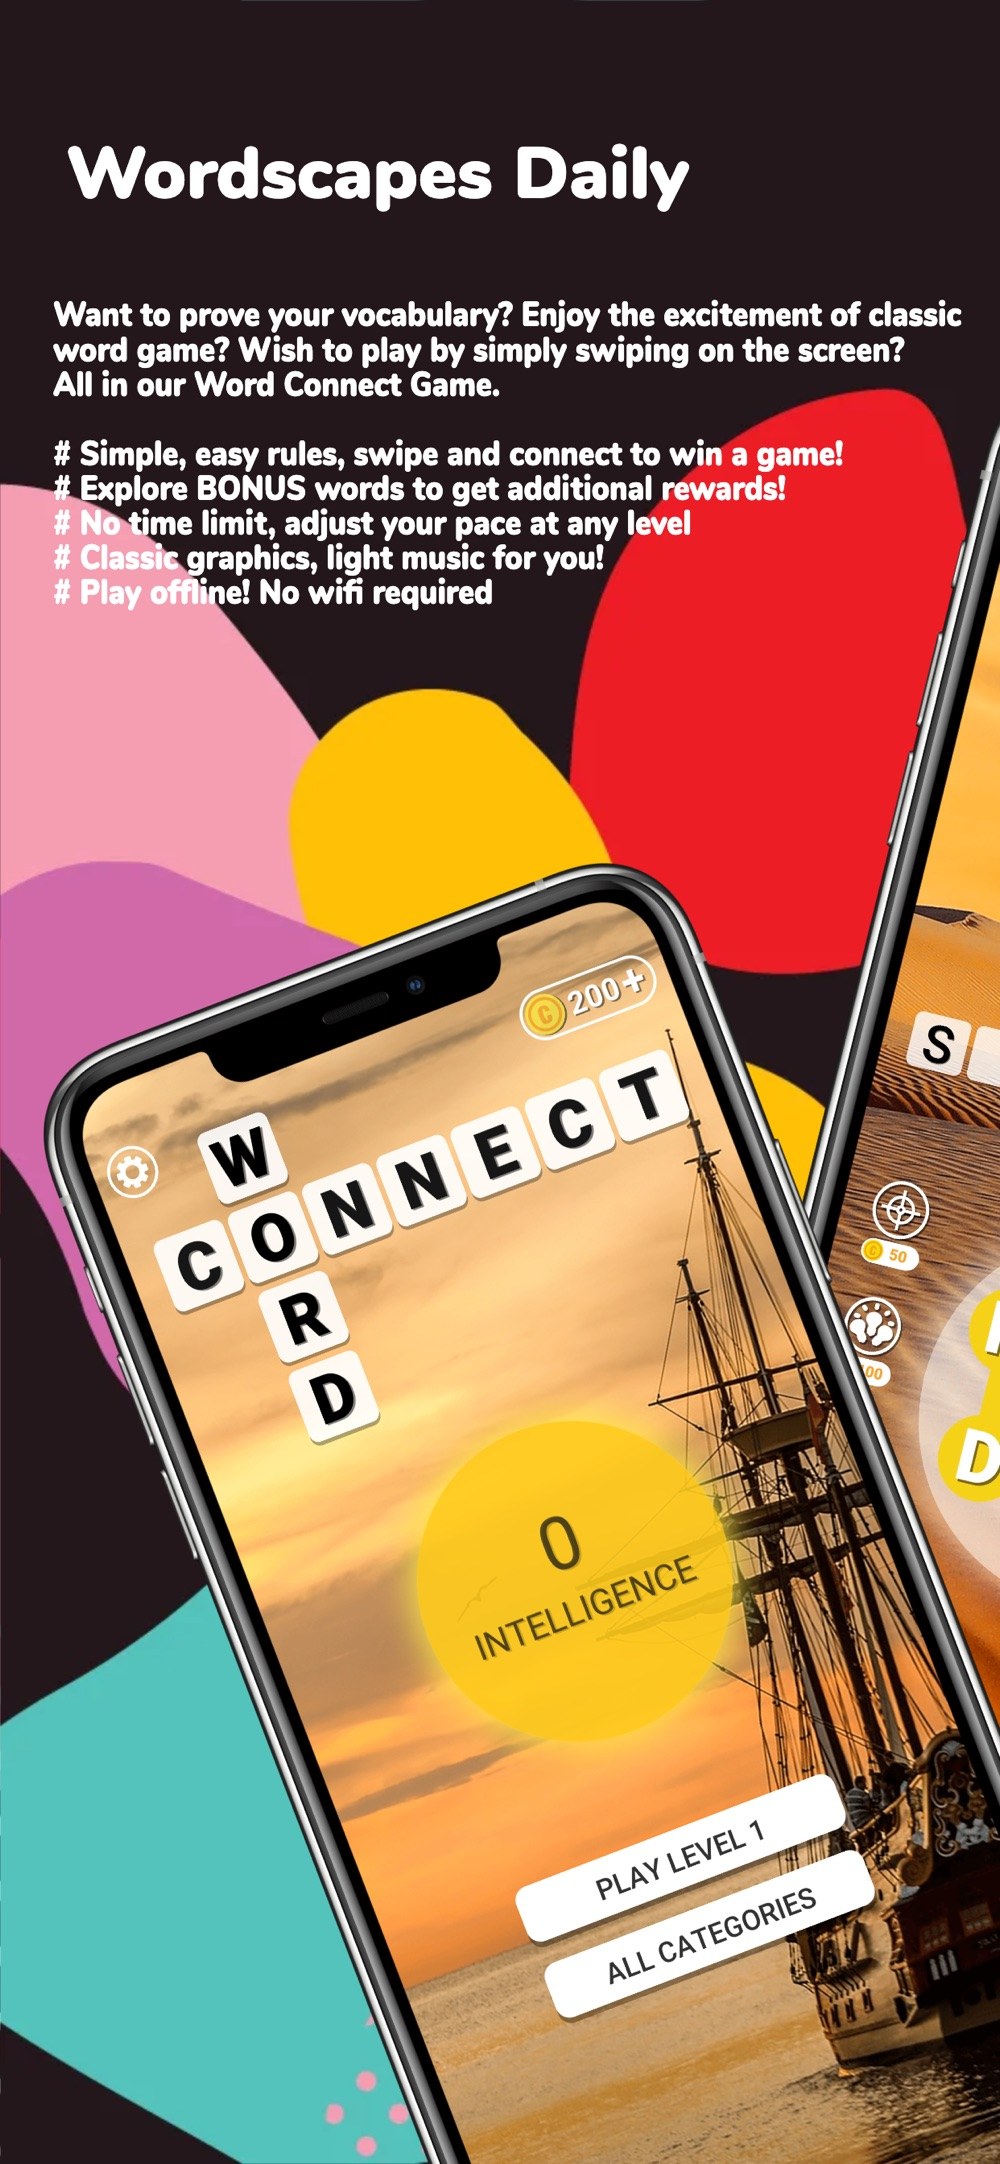 Word Connect: Wordscapes Daily cheat codes